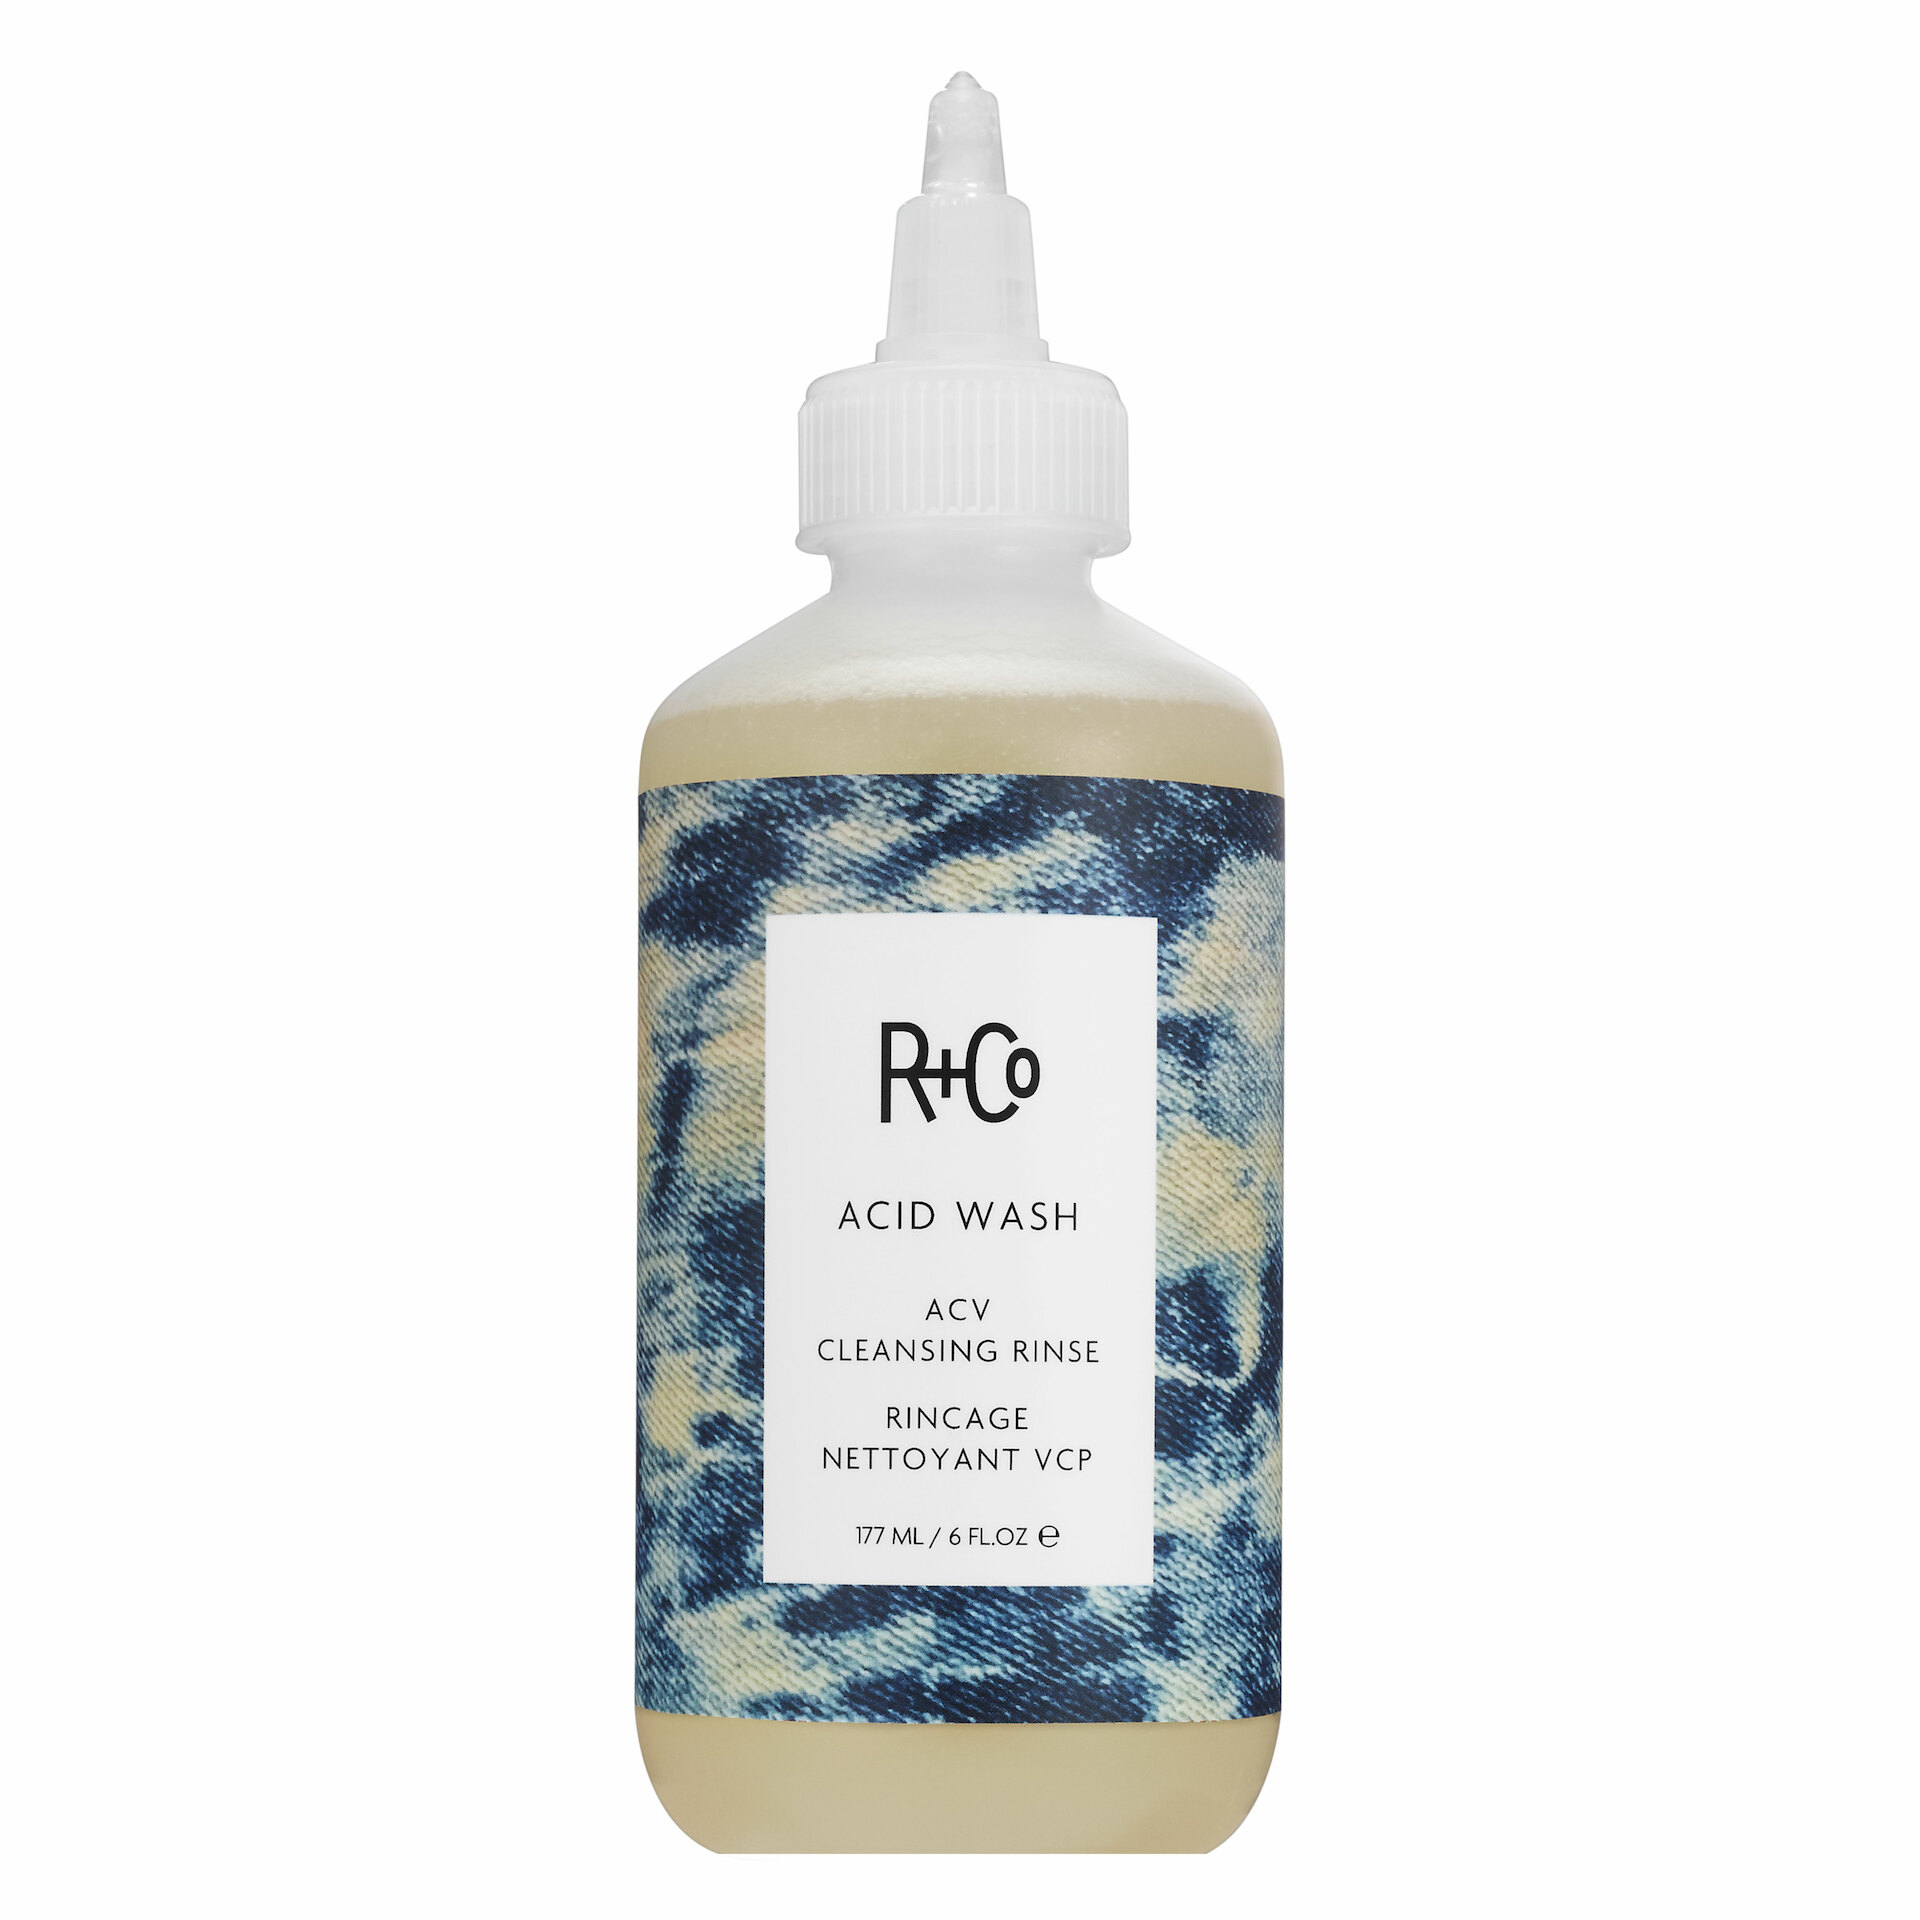 ACID WASH Cleansing Rinse R+Co ACID WASH Cleansing Rinse:177 ml